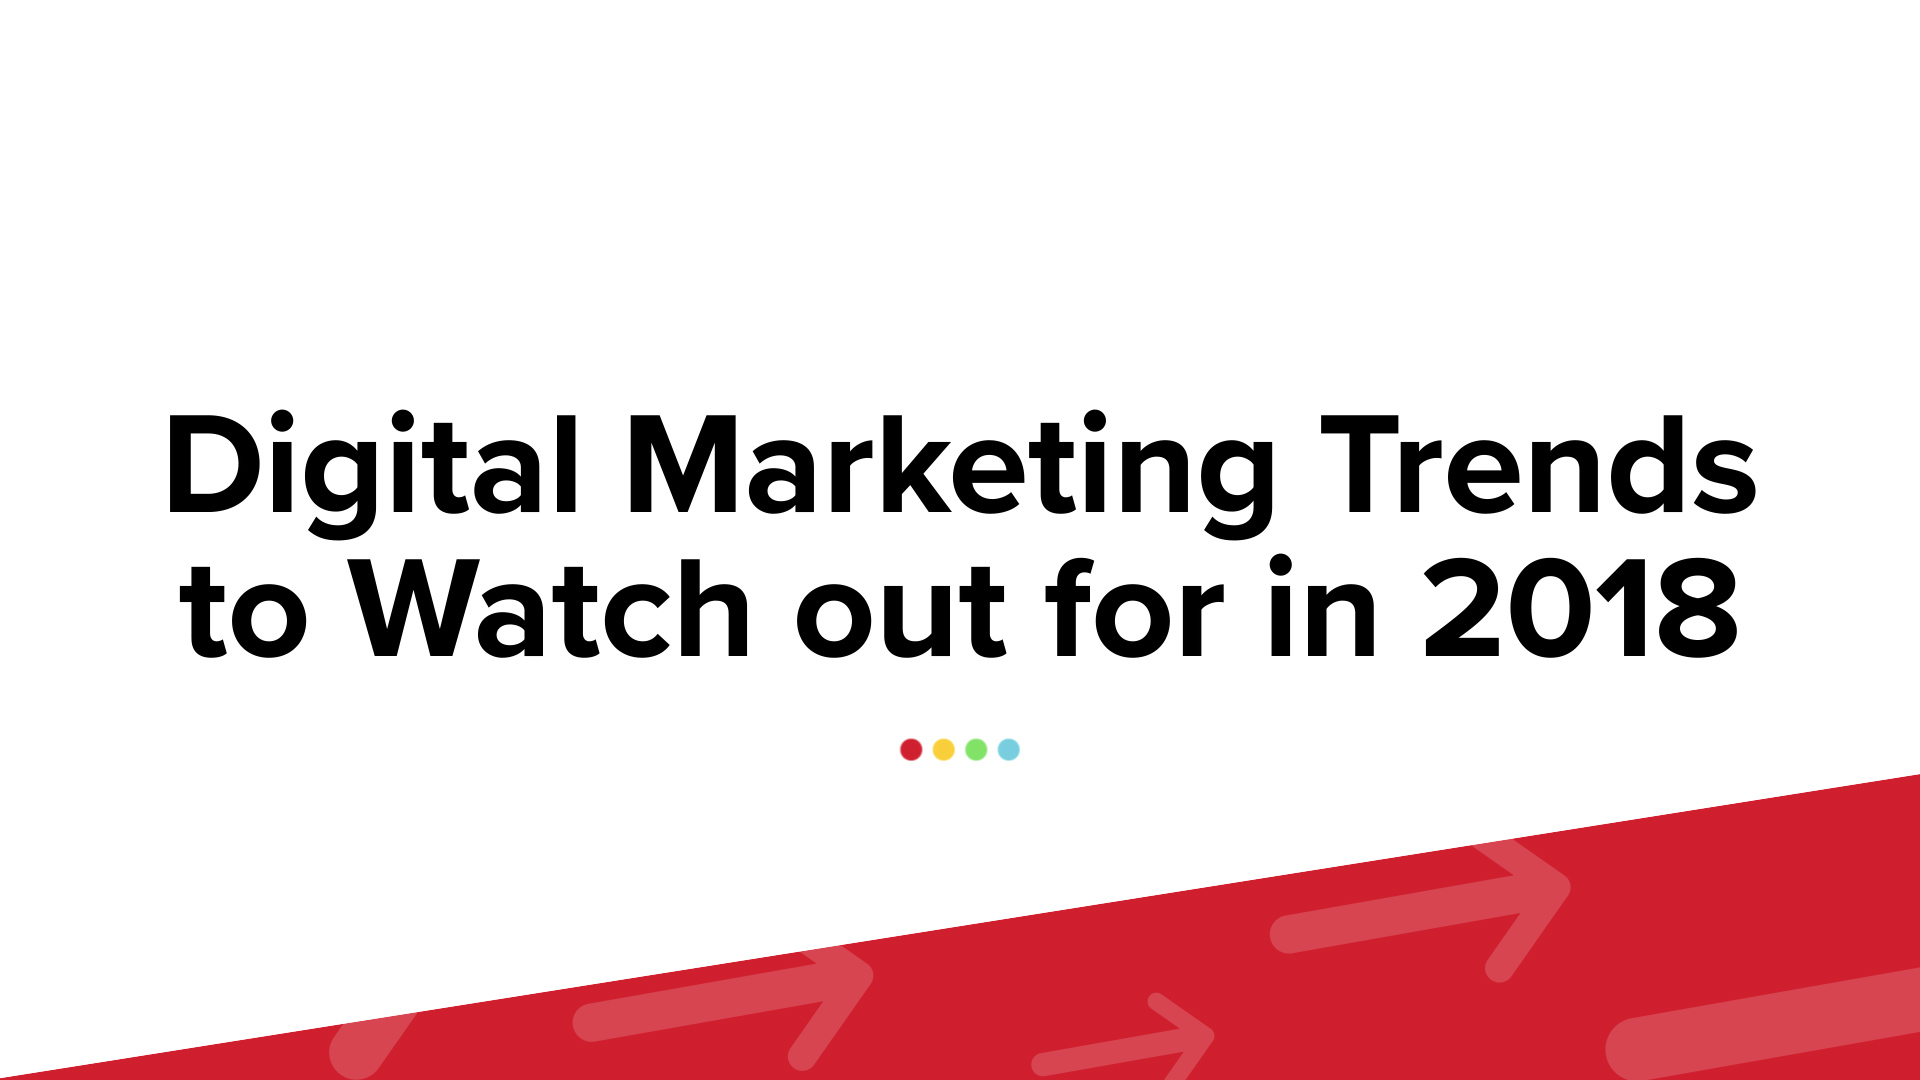 Digital Marketing Trends to Watch out for in 2018